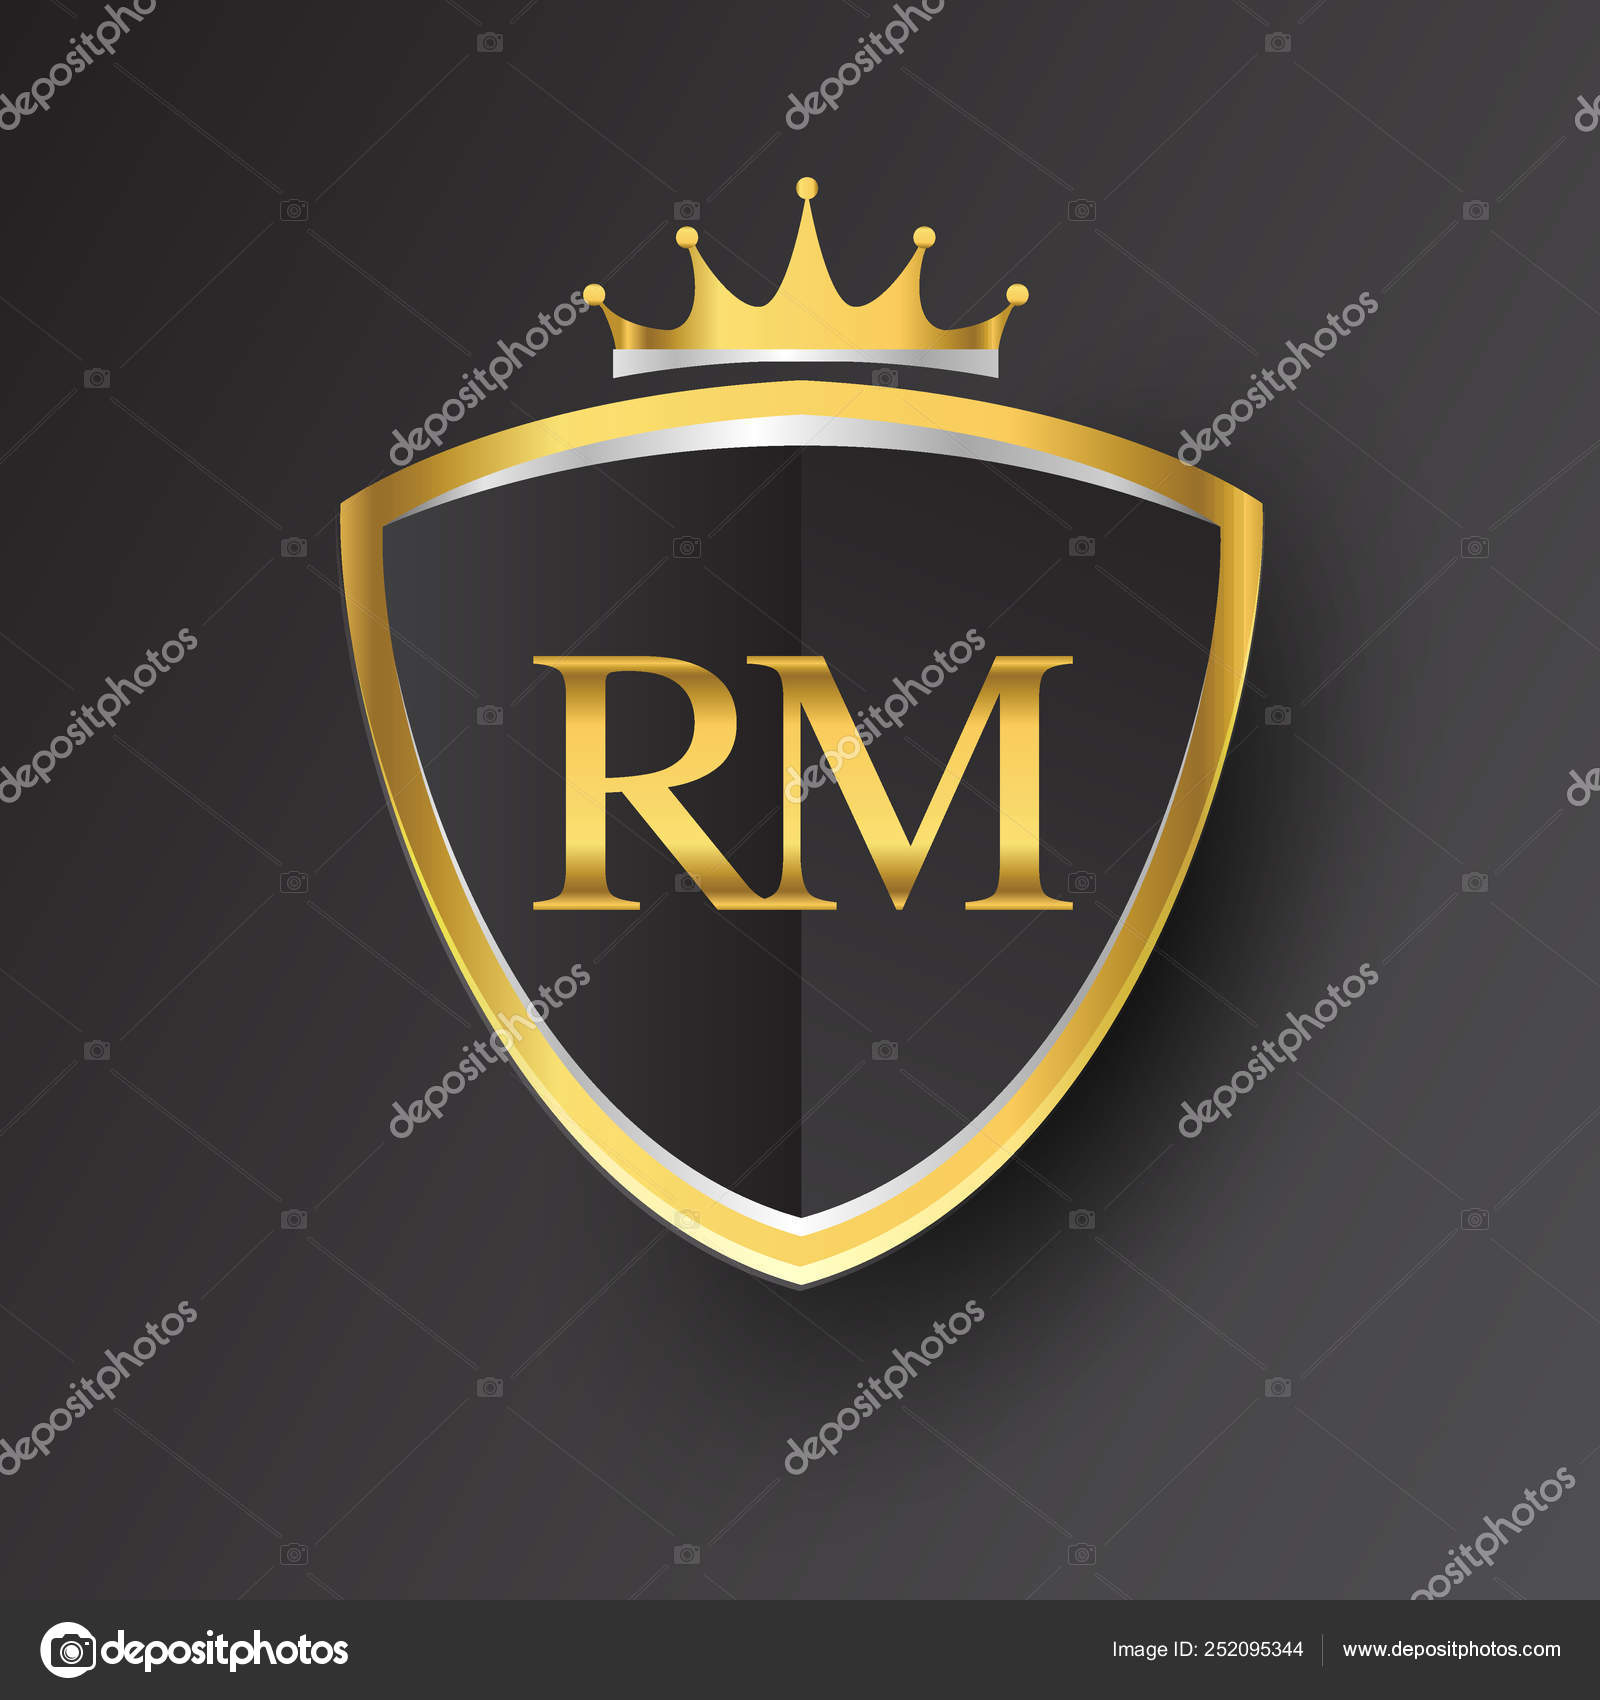 ᐈ rm logo stock pictures royalty free rm images download on depositphotos ᐈ rm logo stock pictures royalty free rm images download on depositphotos